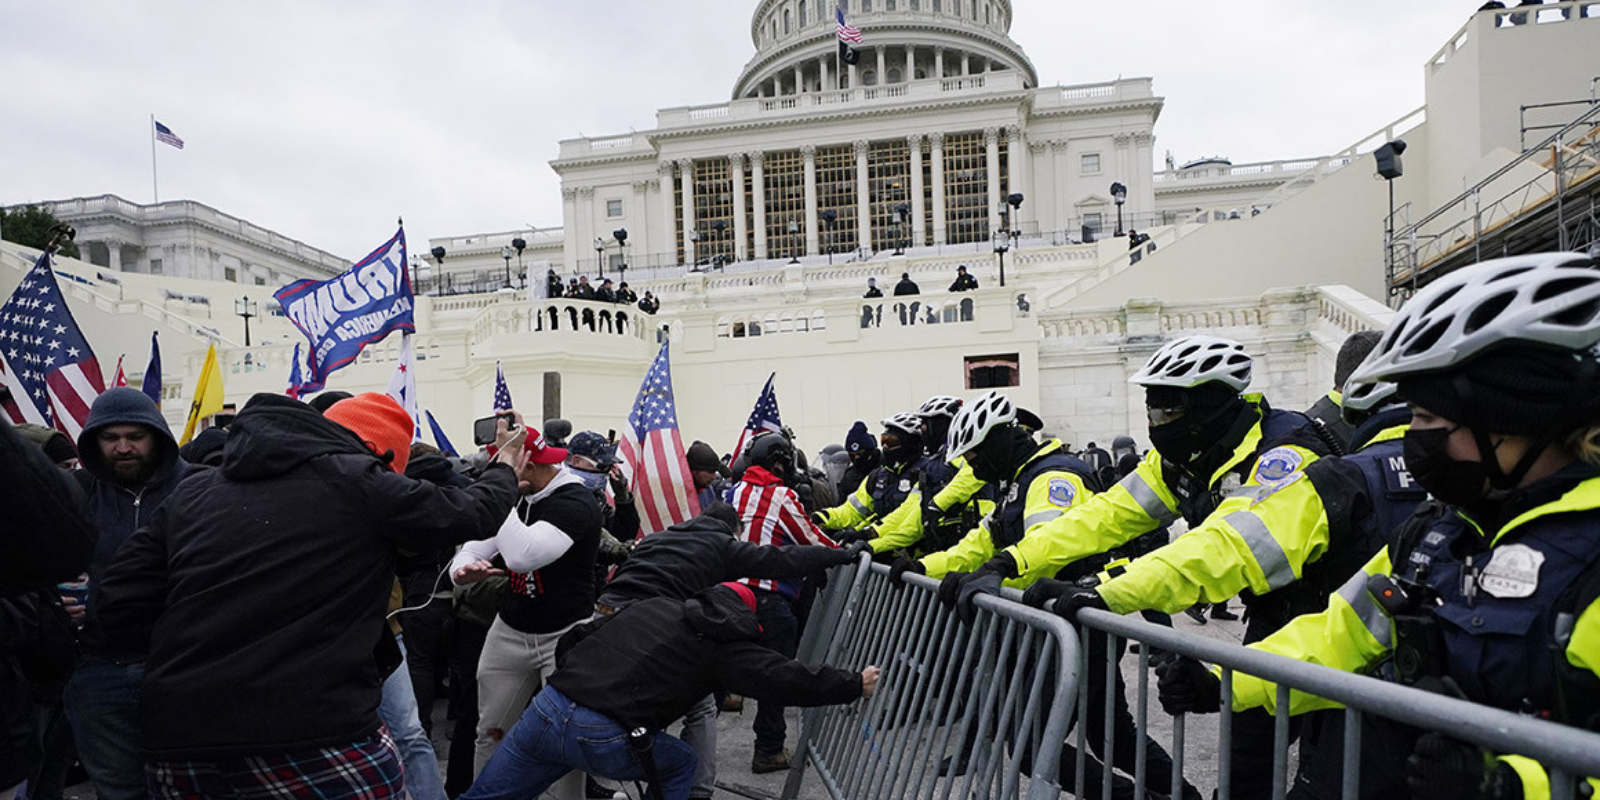 Another Capitol Police officer commits suicide after Jan. 6 riot